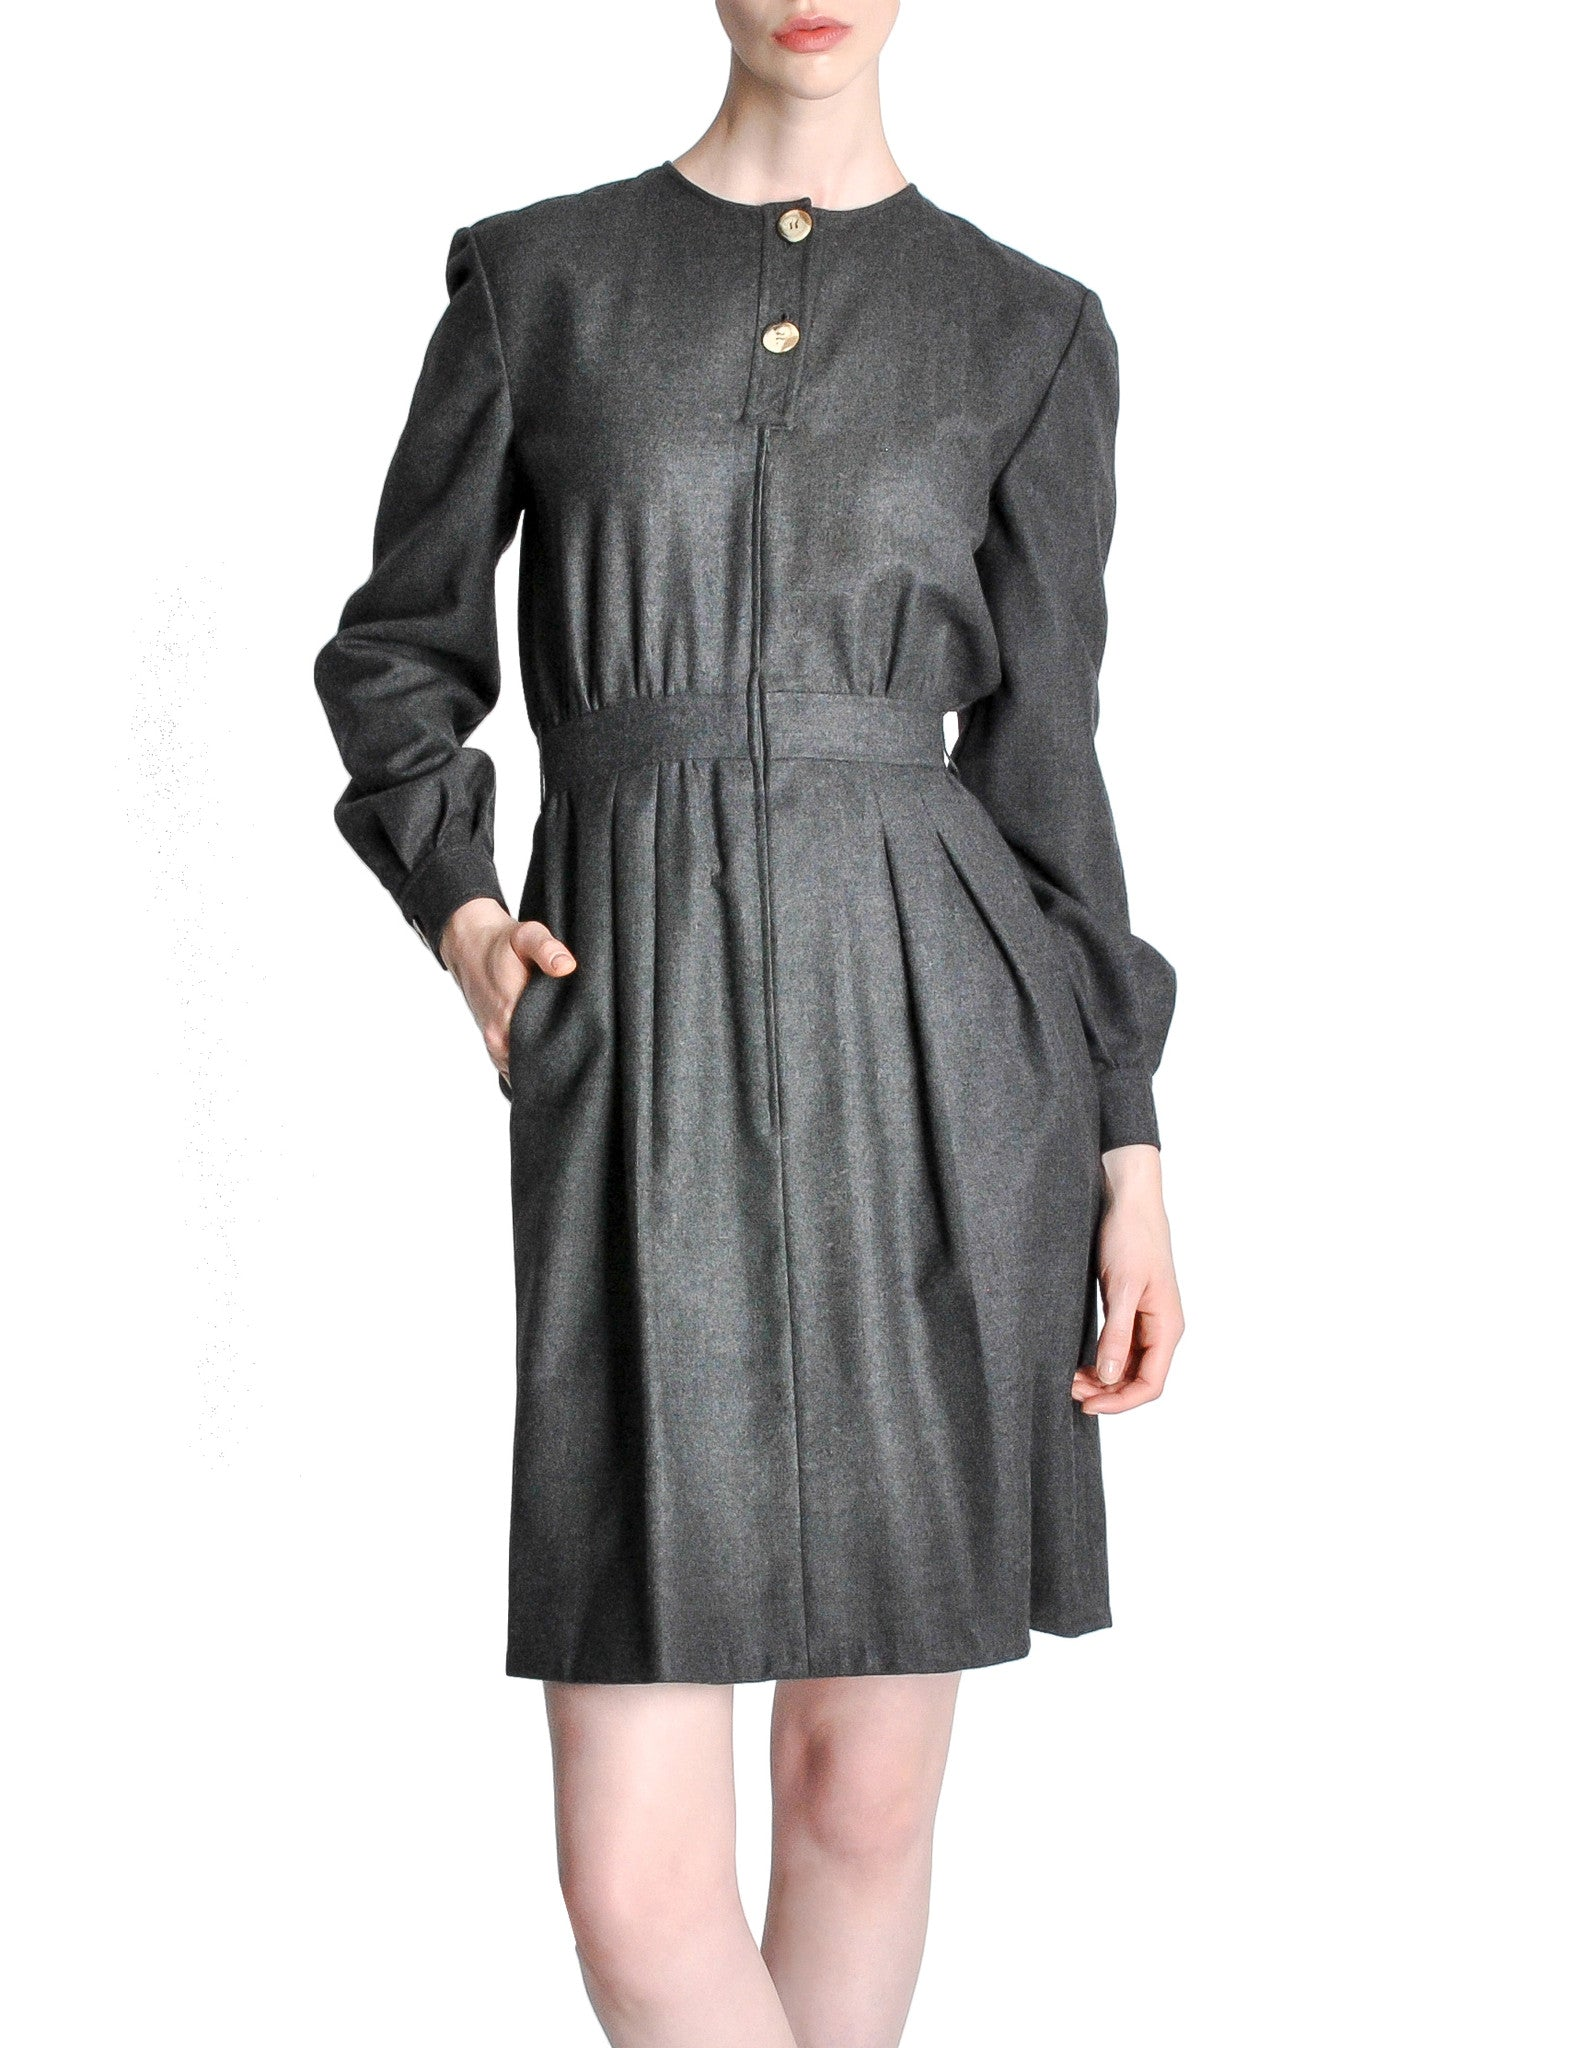 Valentino Vintage Charcoal Grey Wool Dress - Amarcord Vintage Fashion  - 1